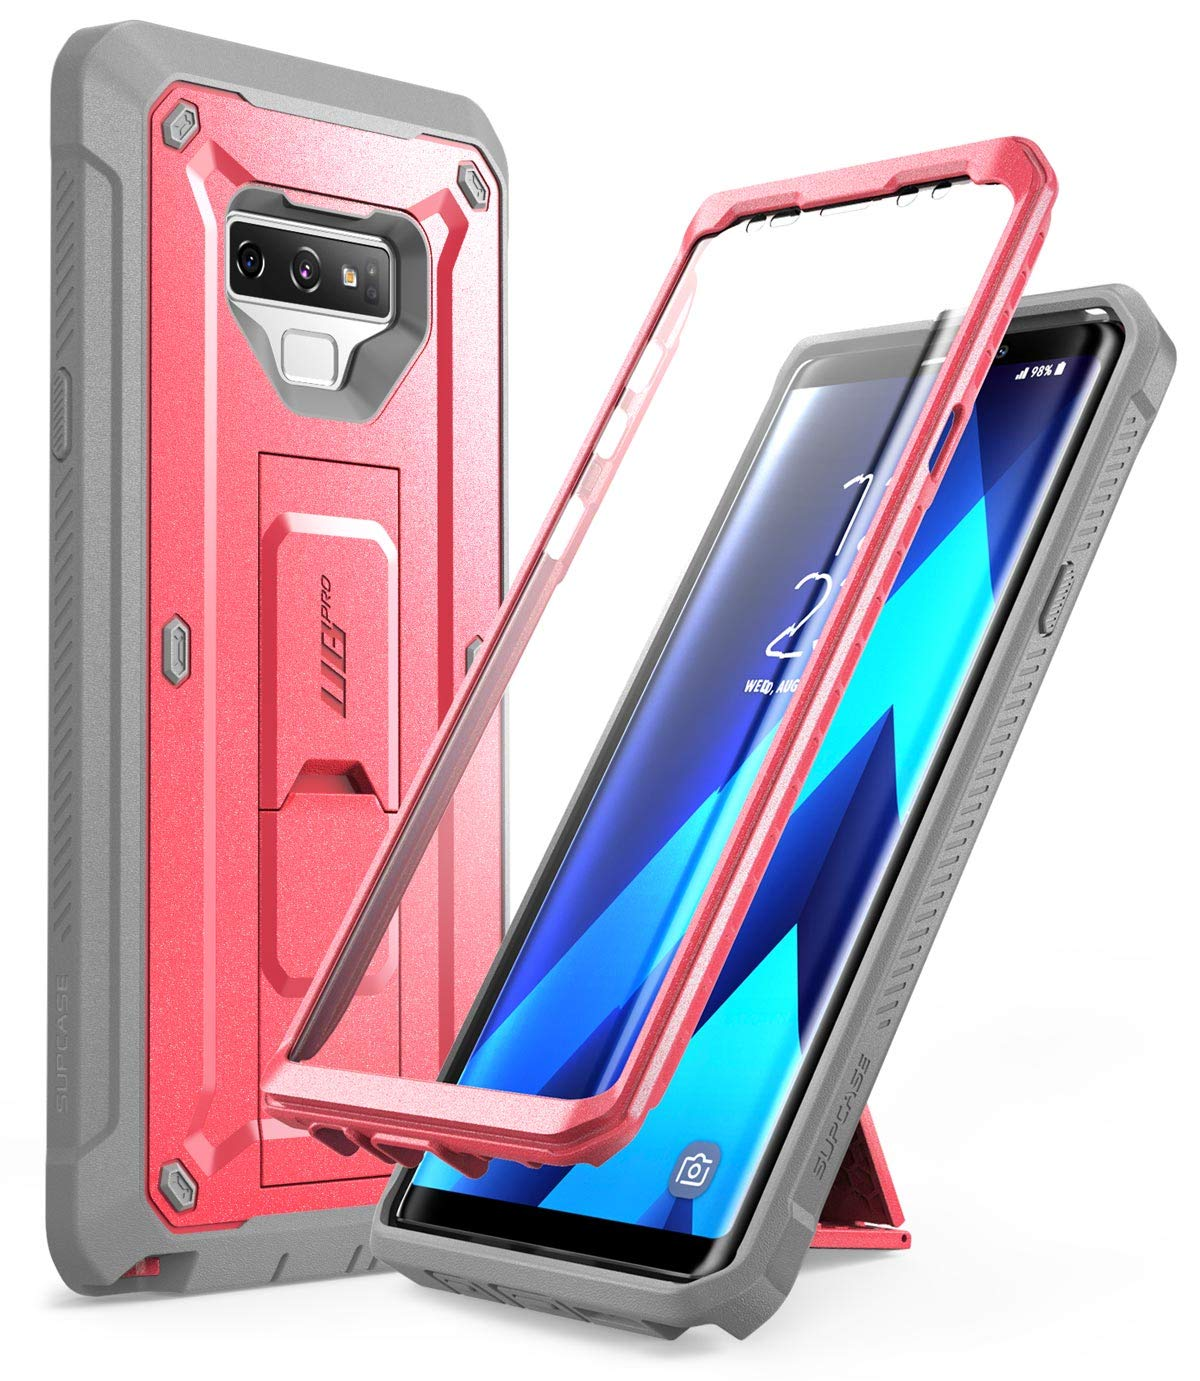 Samsung Galaxy Note 9 Case, SUPCASE Full-Body Rugged Holster Case with Built-in Screen Protector & Kickstand for Galaxy Note 9 (2018 Release), Unicorn Beetle Pro Series (White)